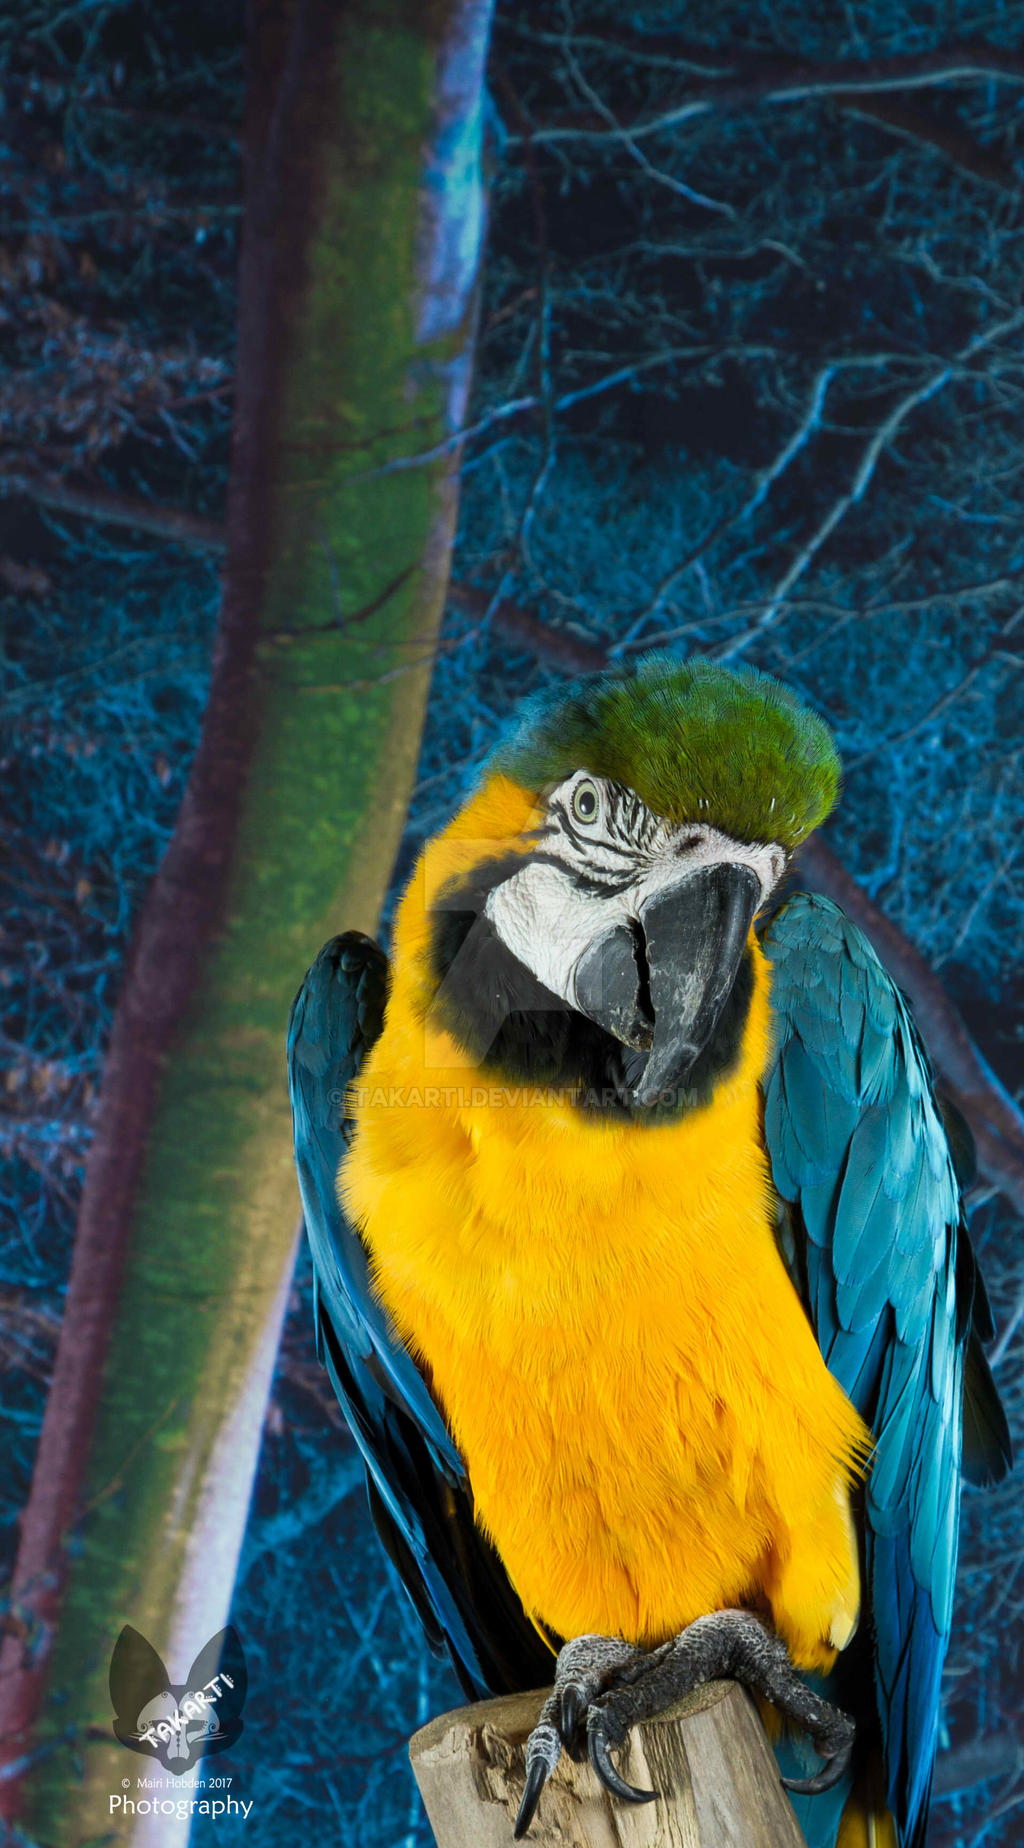 Basil the blue and gold Macaw by Takarti